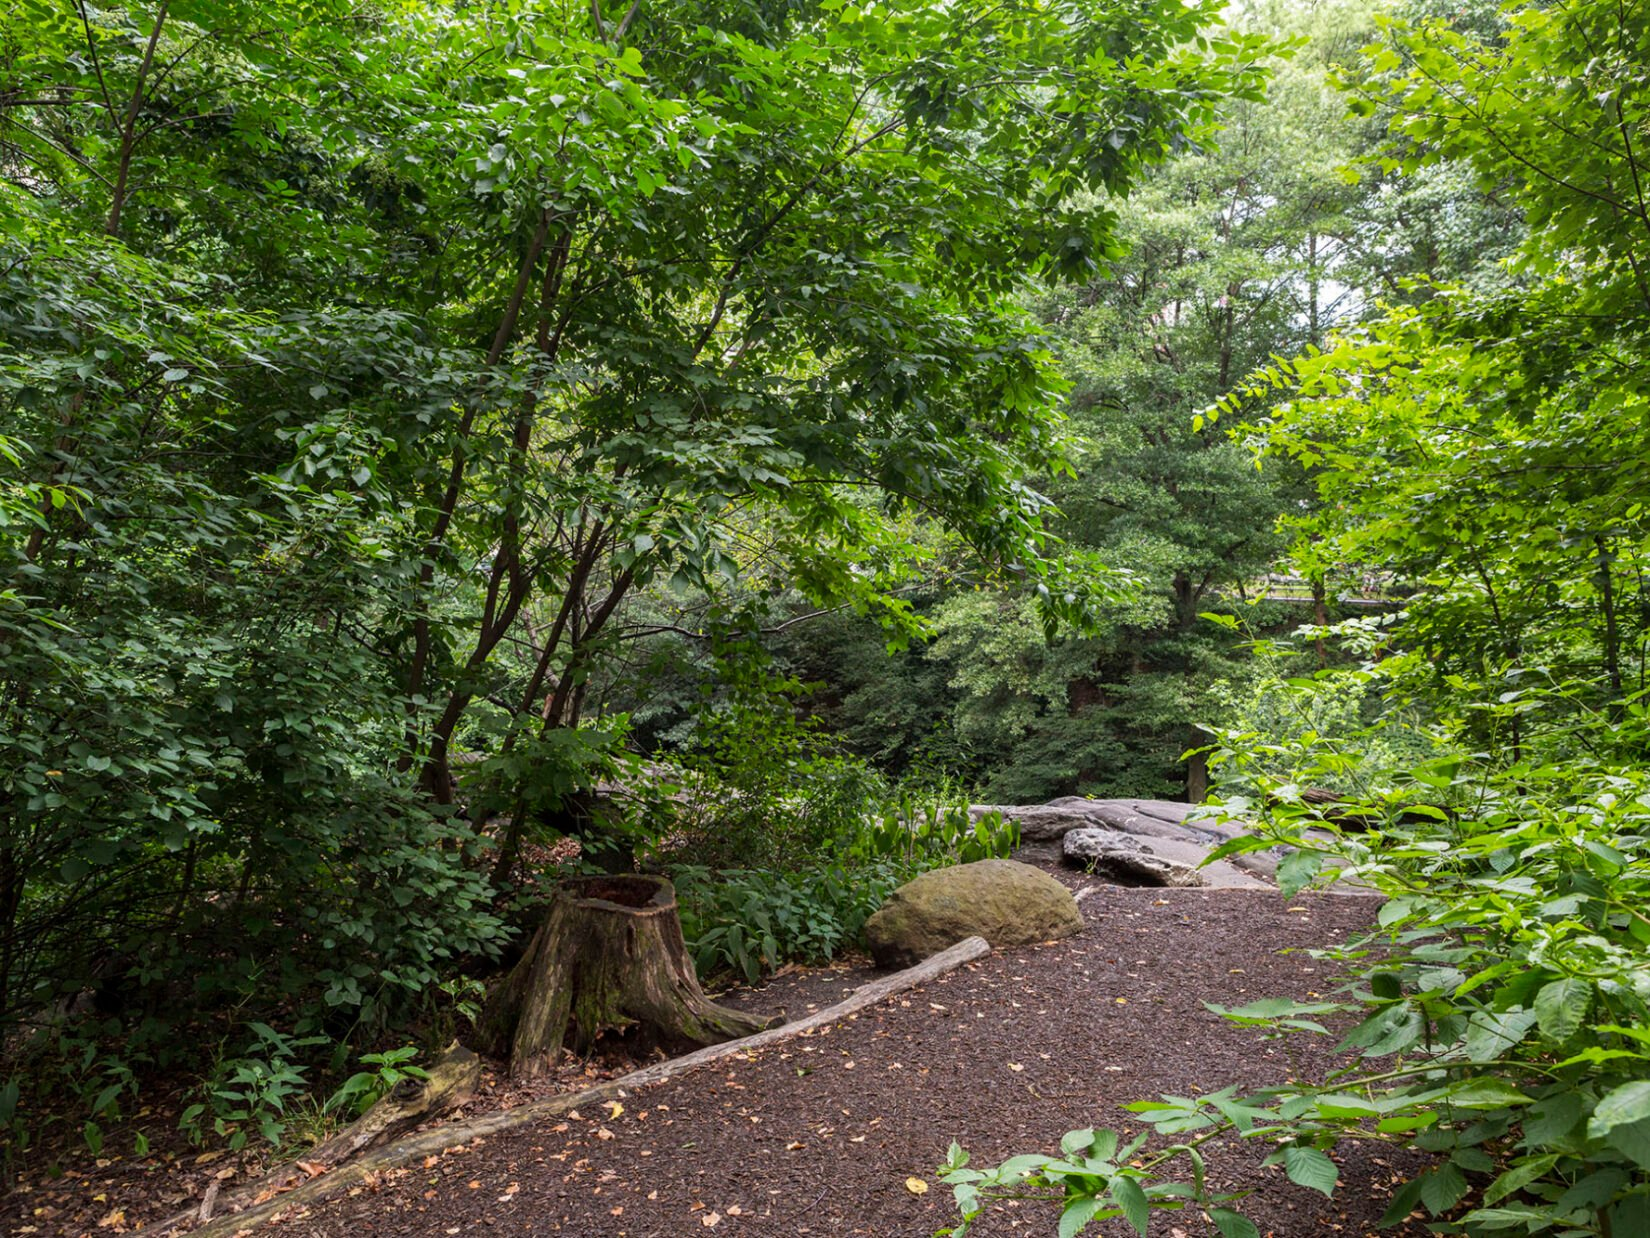 A revitalized footpath is lined by trees and underbrush